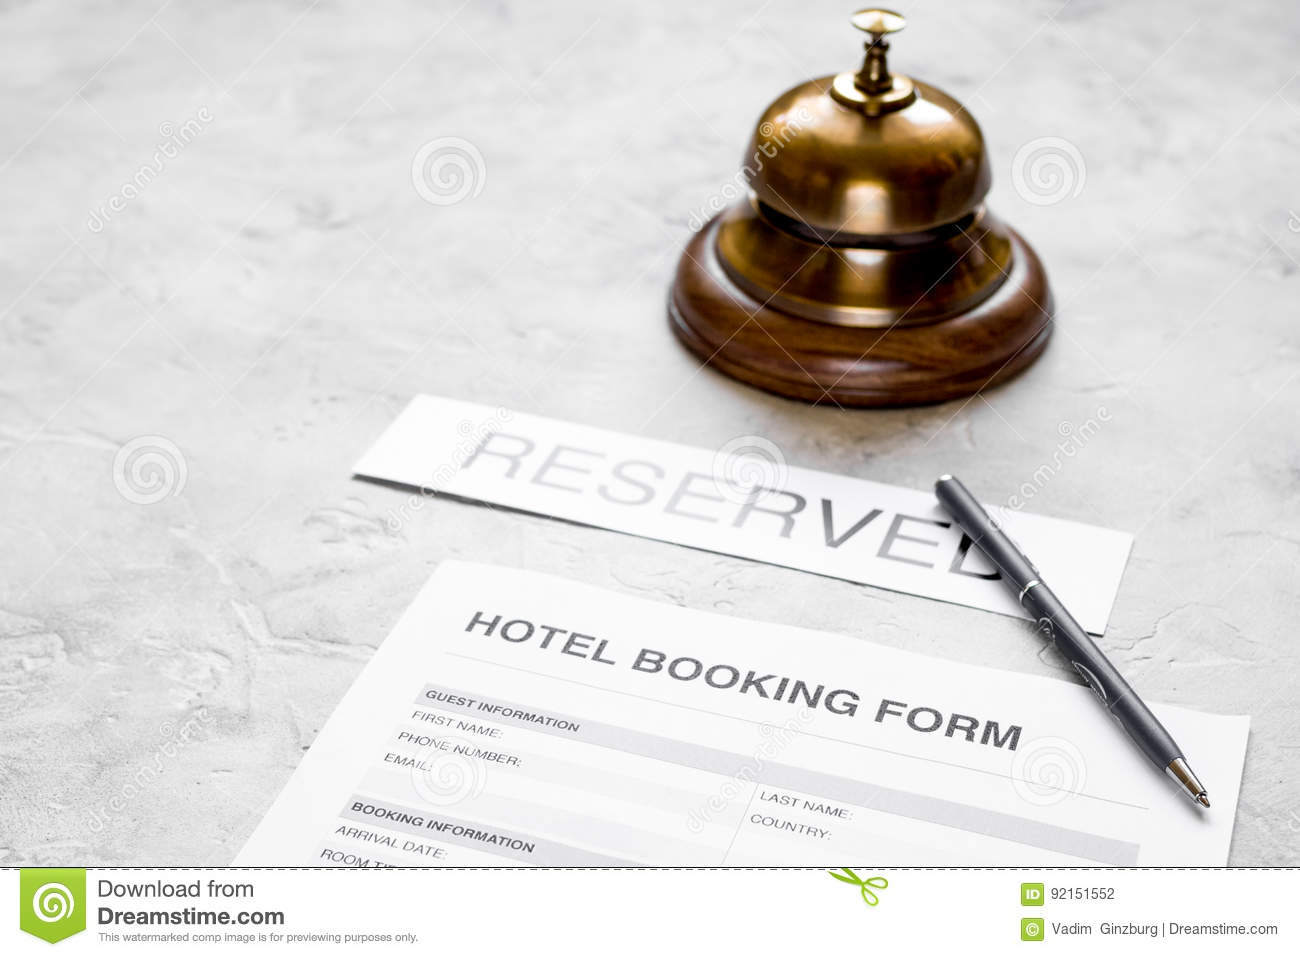 Booking Form For Hotel Room Reservation, Pen And Ring Stone